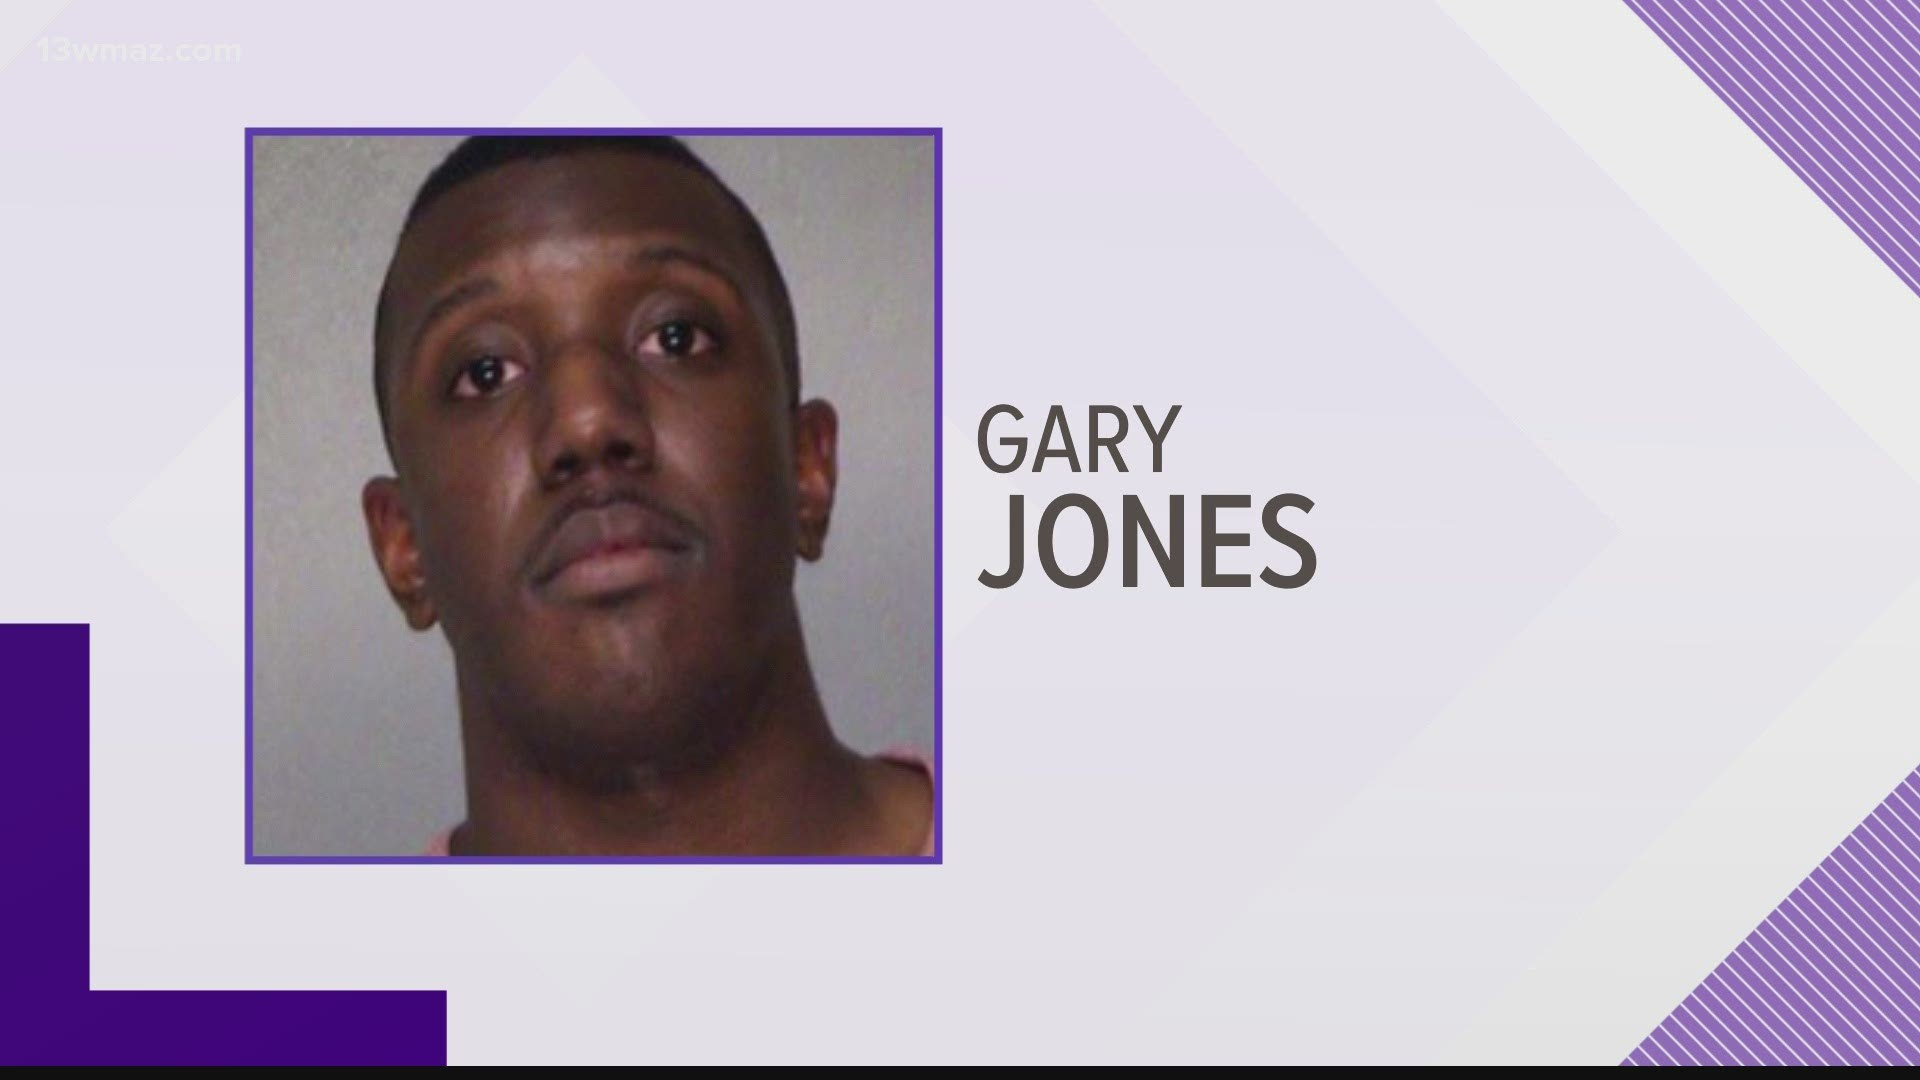 Off duty Ga. police officer nabbed stealing phone at nightclub gets Tased while resisting arrest